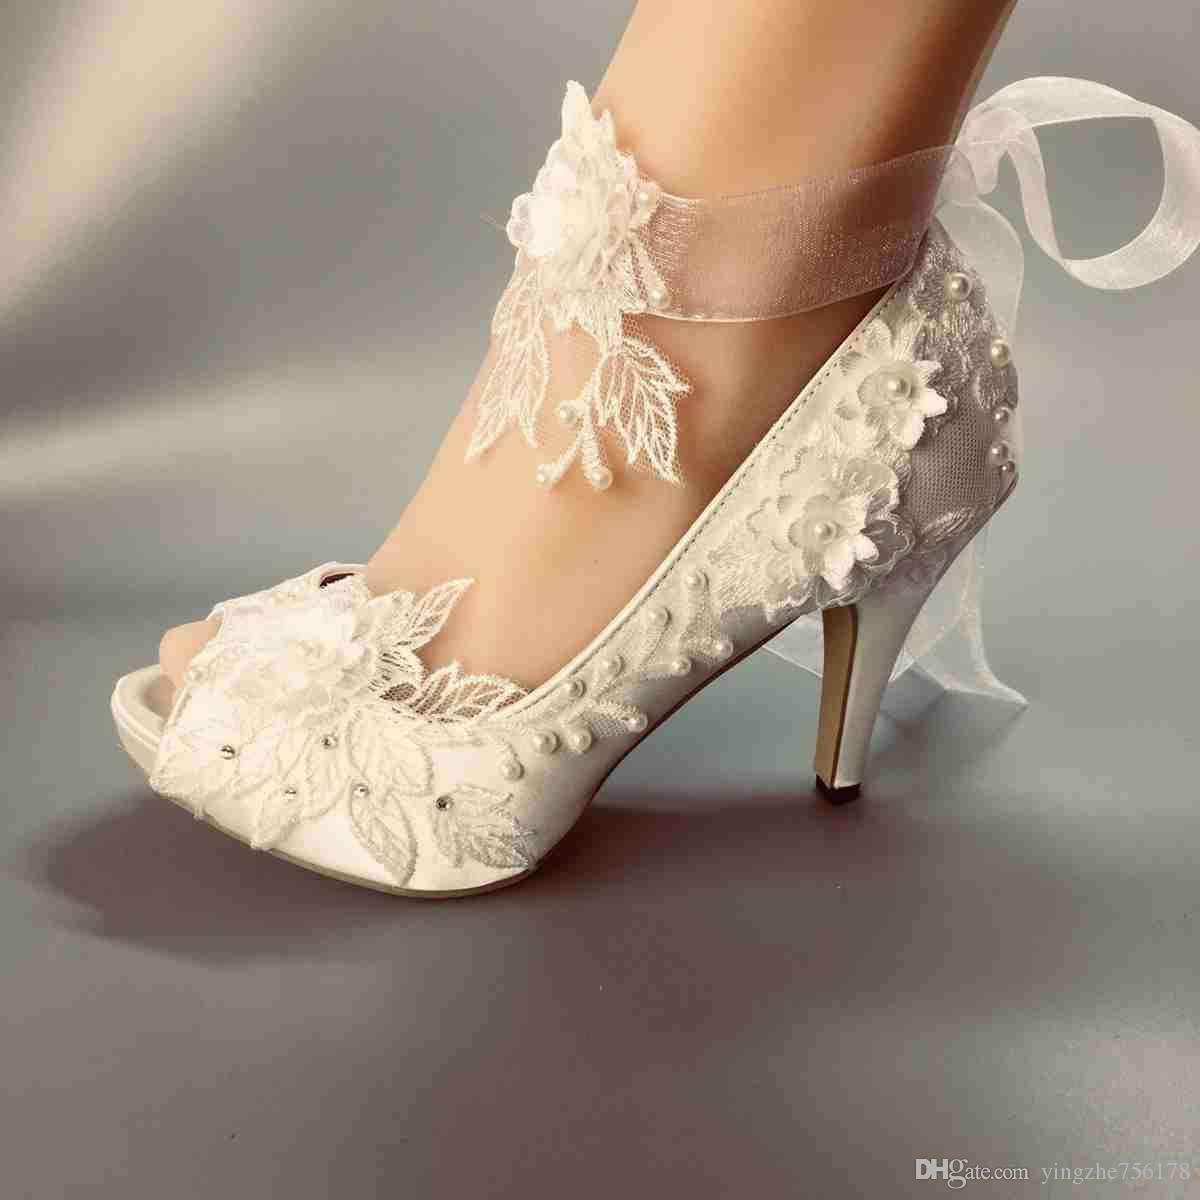 a875a9ce2c1b Wedding Shoes Waterproof White Ivory Bride Wedding Dresses PEEP TOE Diamond  Lace Manual Wedding BRIDAL HEEL Shoe OPEN TOE SIZE EU 35 42 Fuschia Bridal  Shoes ...